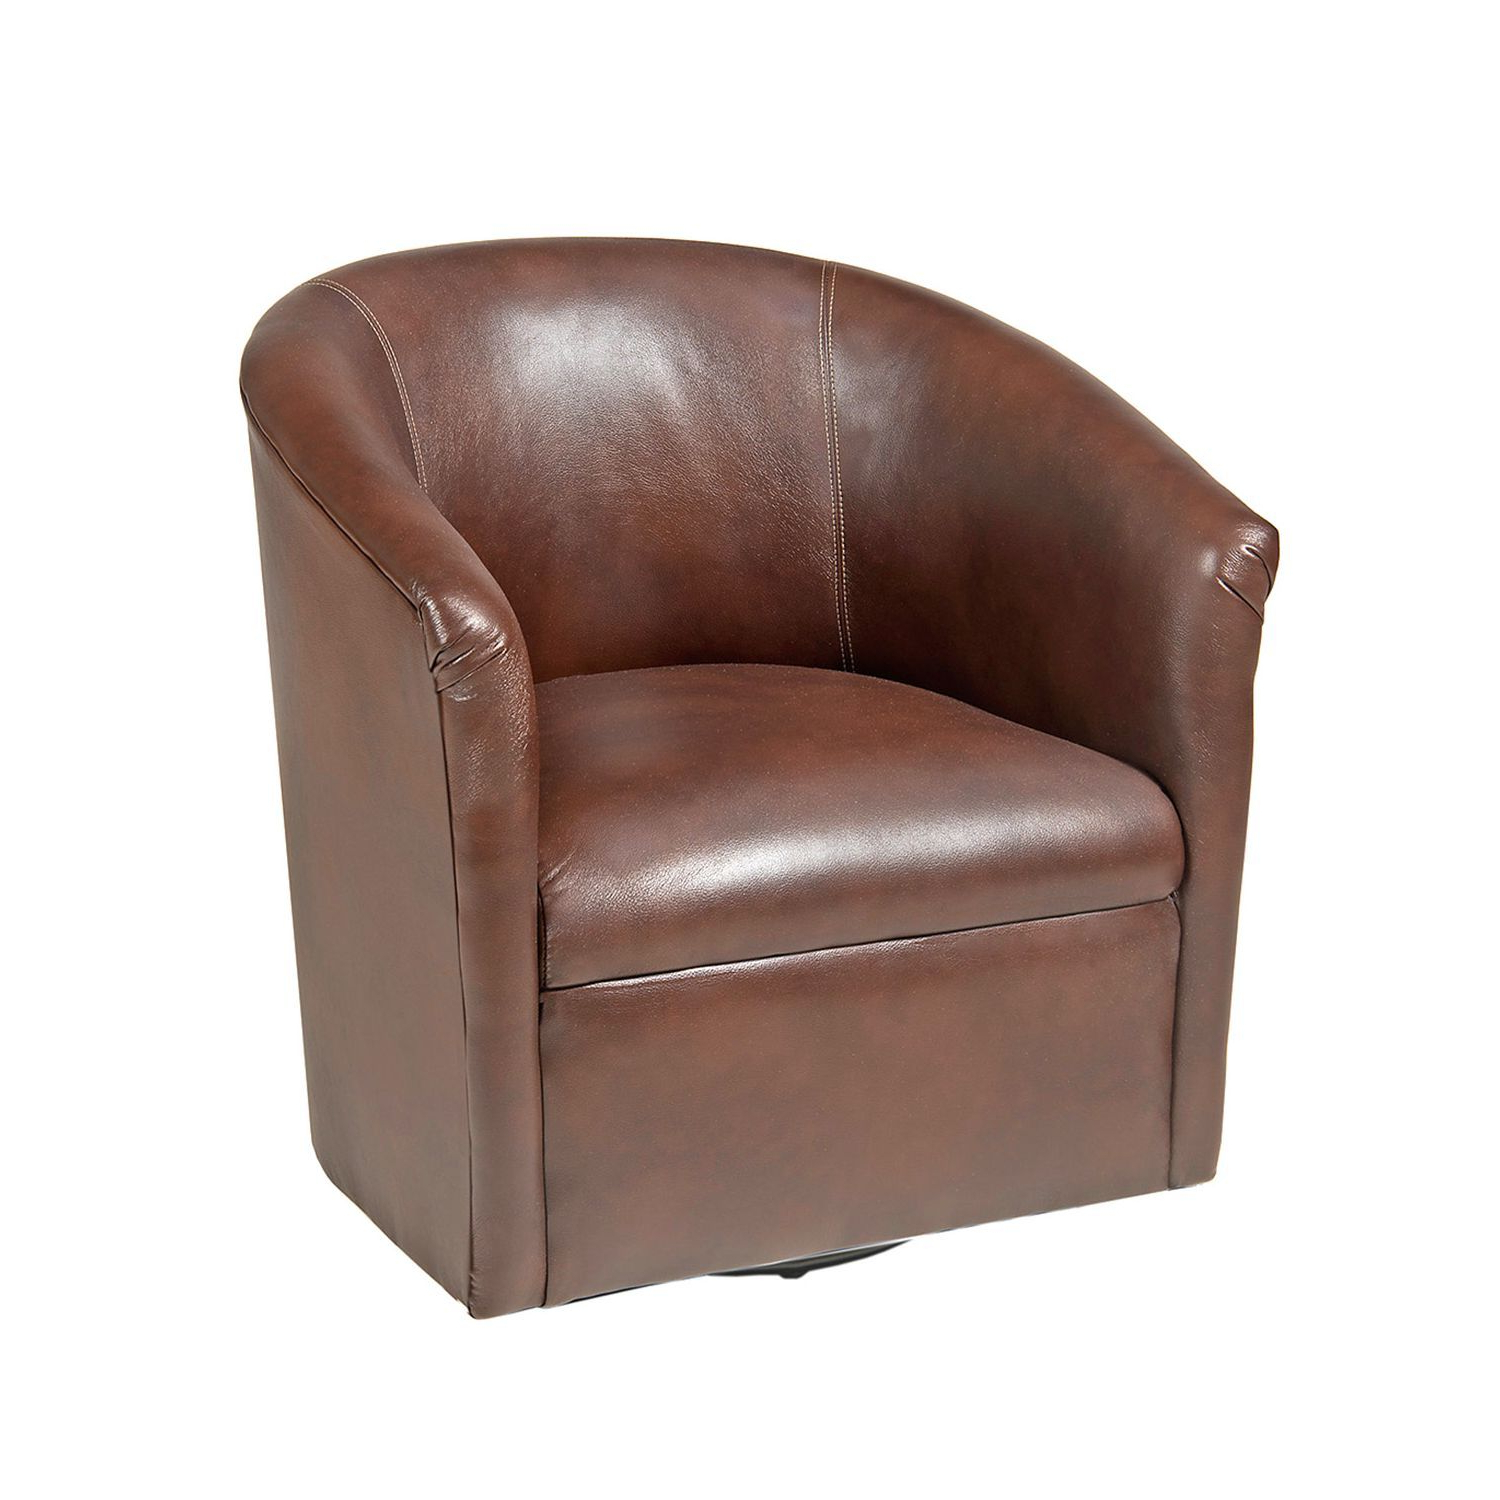 Pinterest Throughout Favorite Devon Ii Swivel Accent Chairs (View 16 of 20)